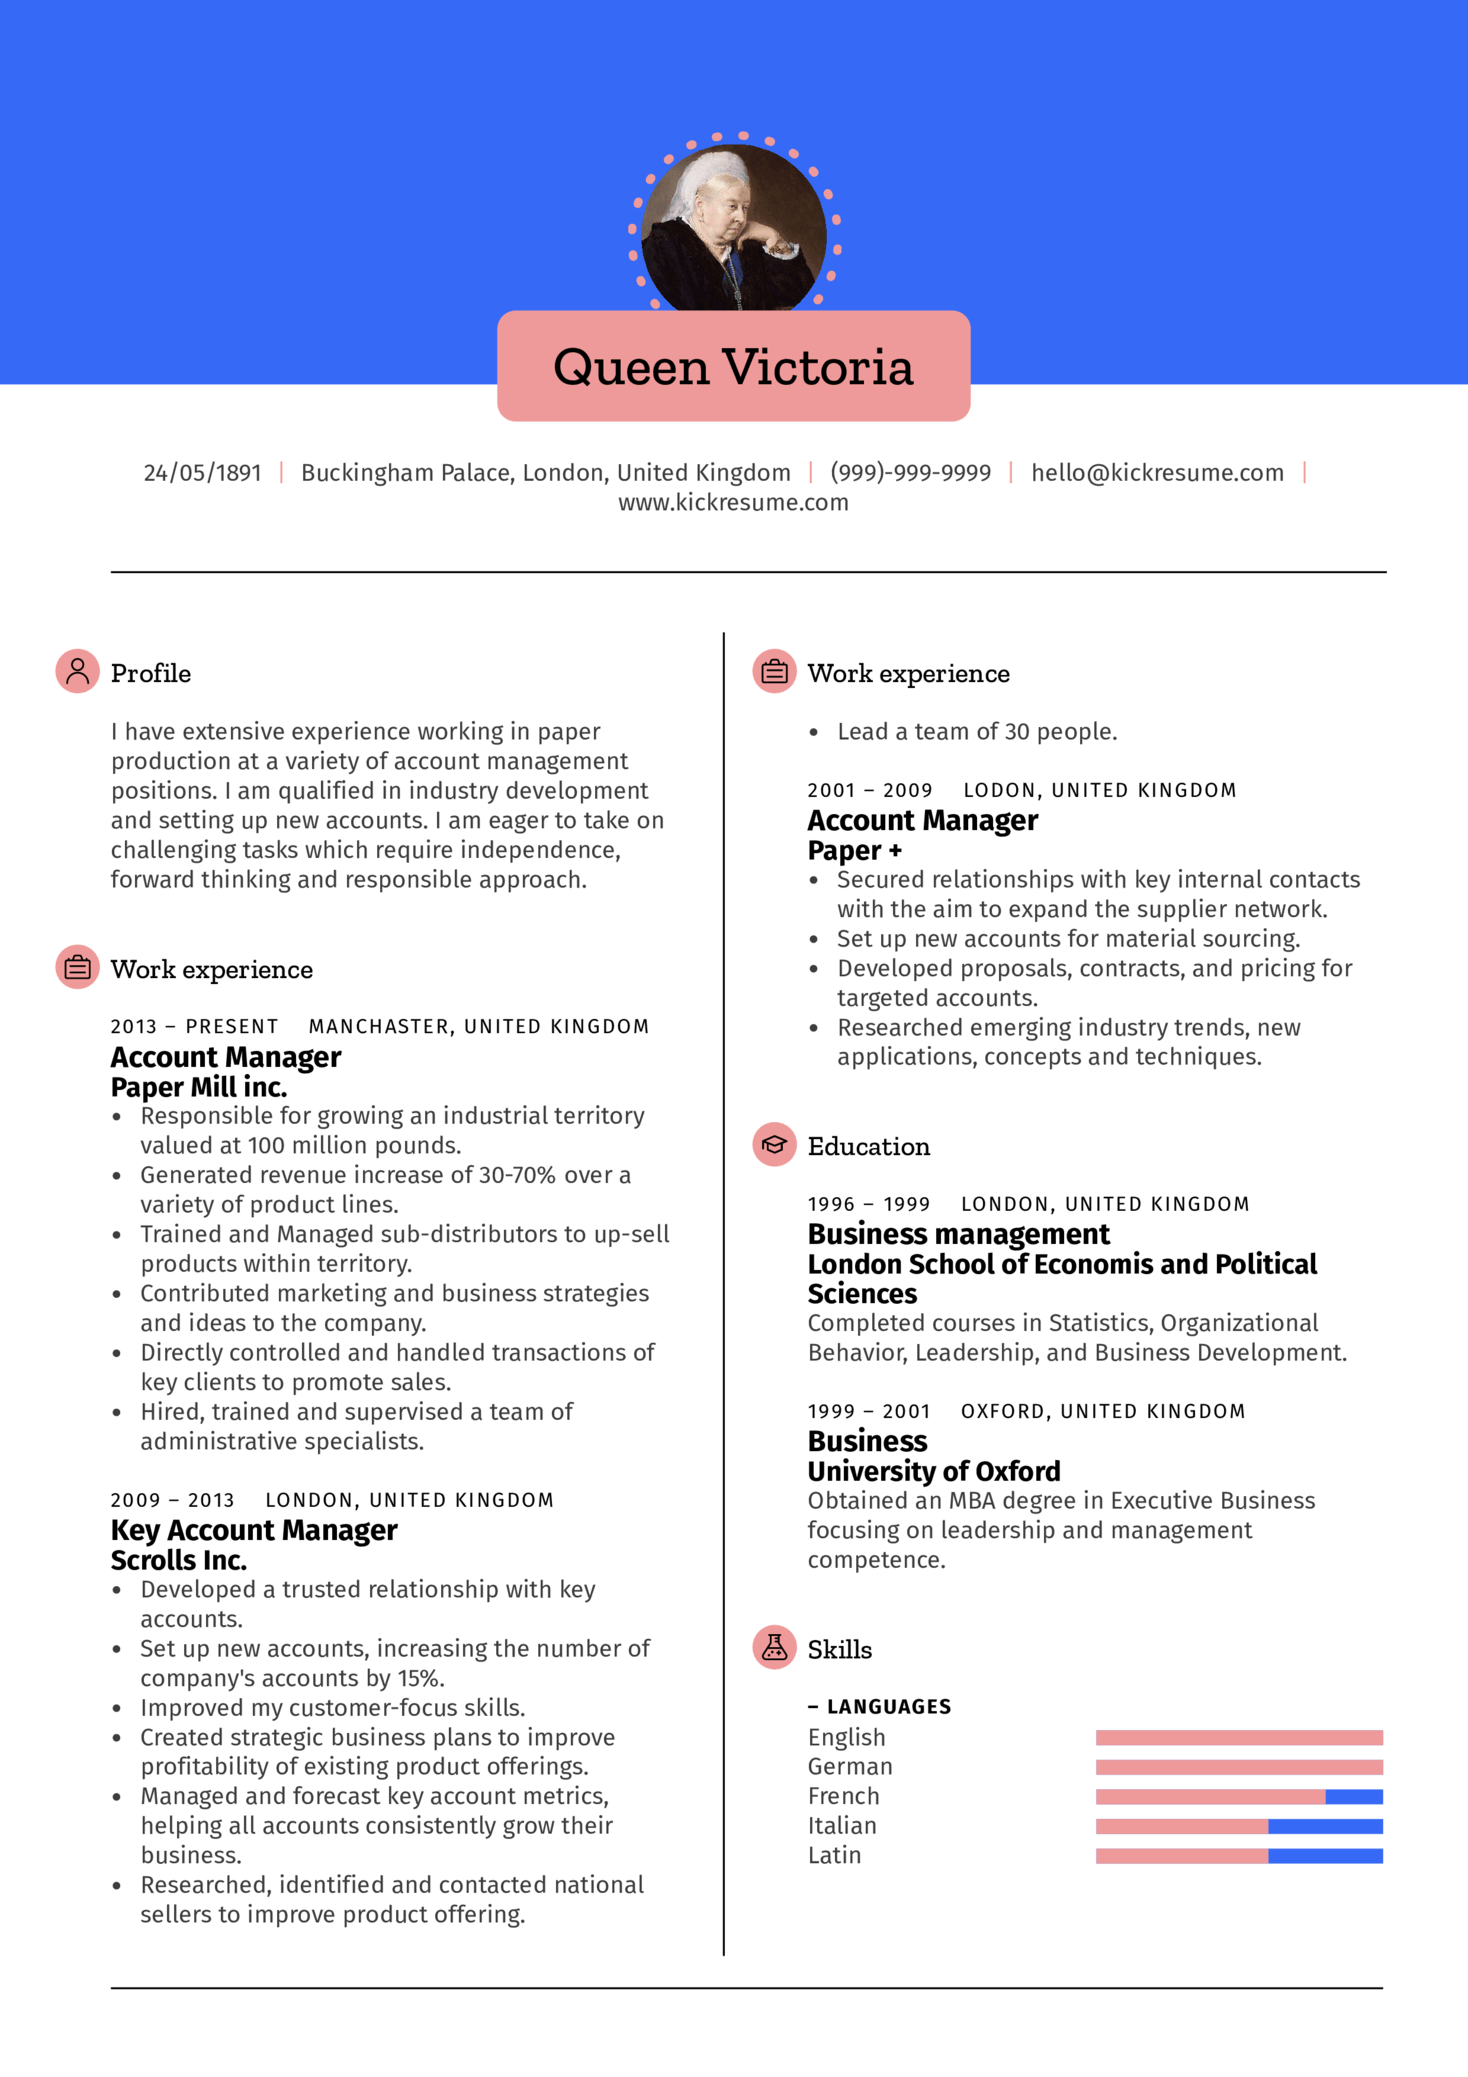 Engineering Account Manager Resume Sample Resume samples Career